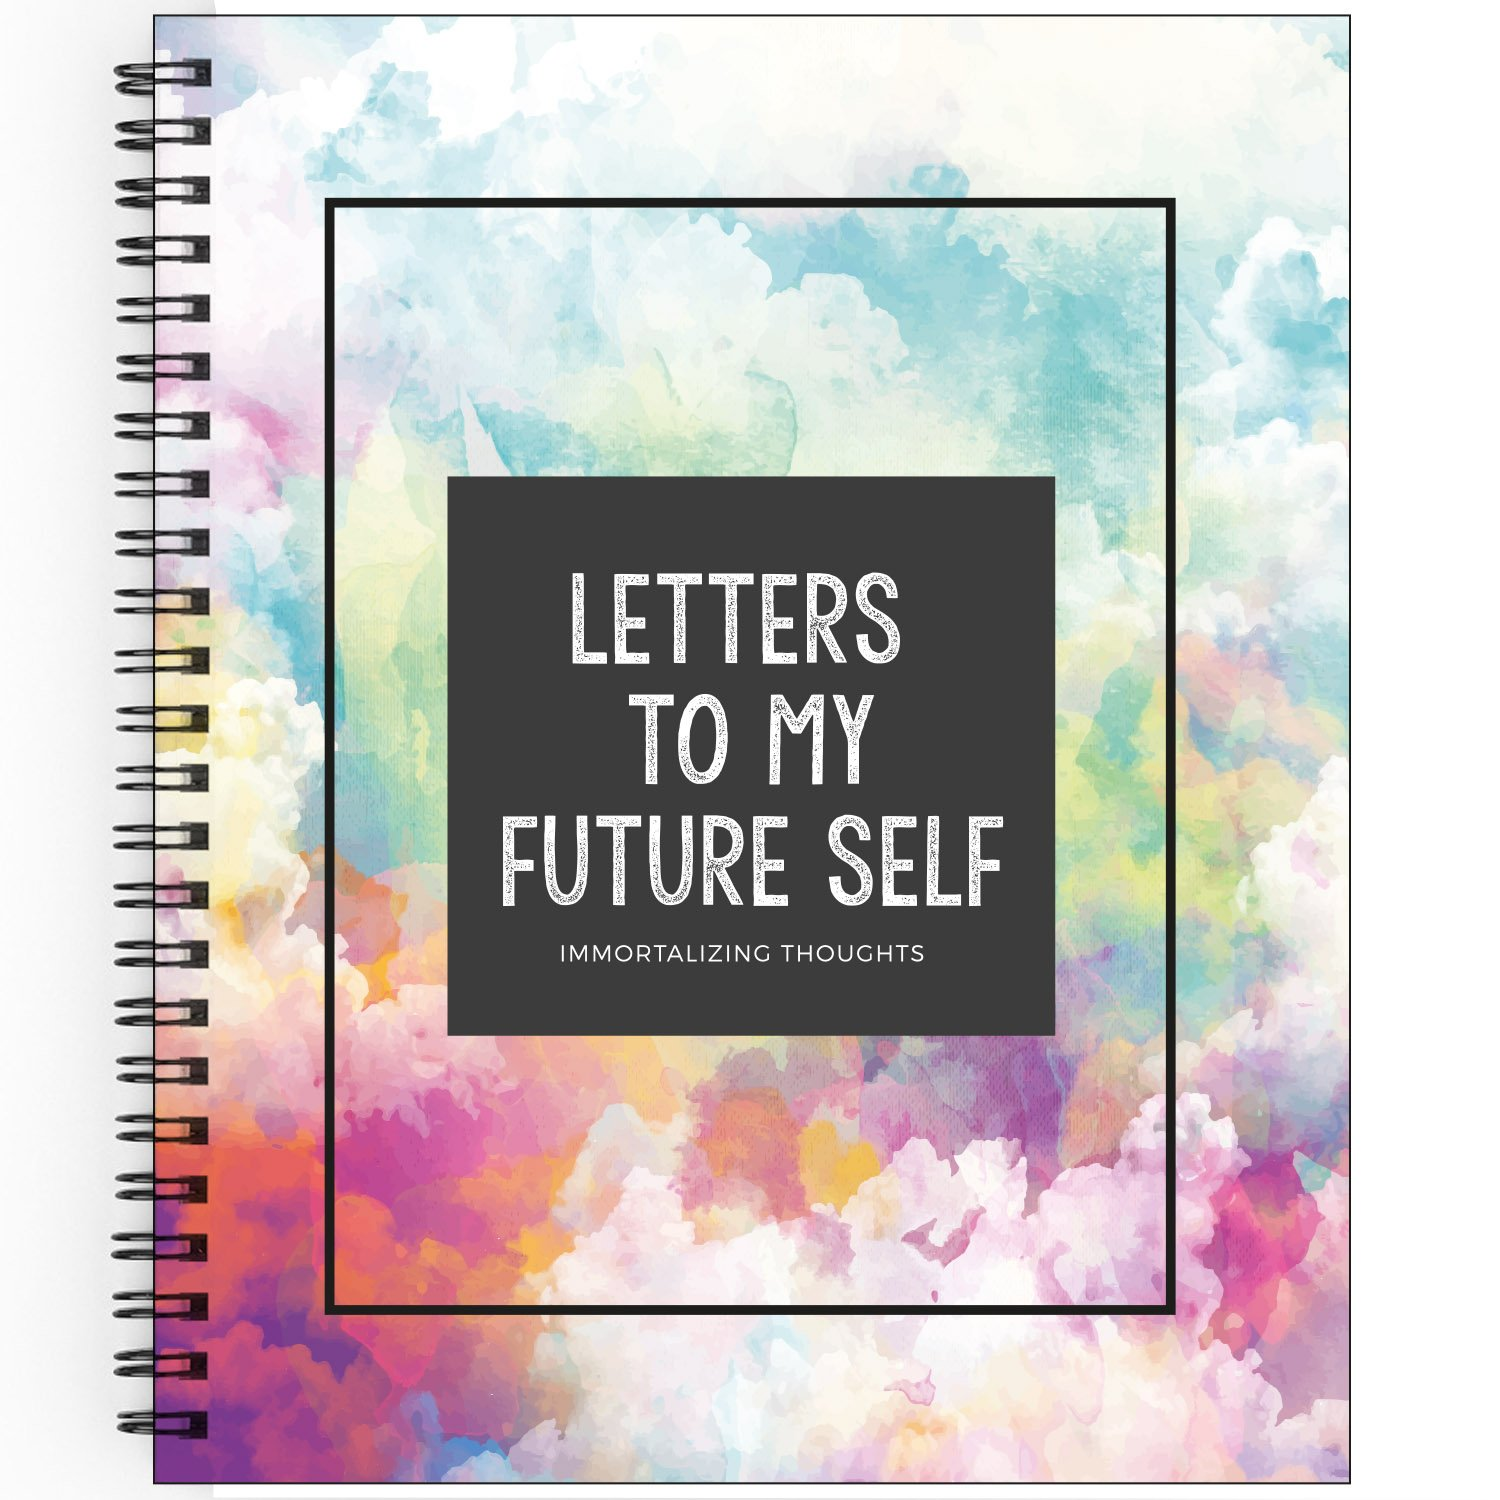 Immortalizing Thought: Letter To My Future Self! Positive And Professional Gift - Colorful Book For Write Dreams And Life Goals, The Best Way of Personal Growth. Live in your world